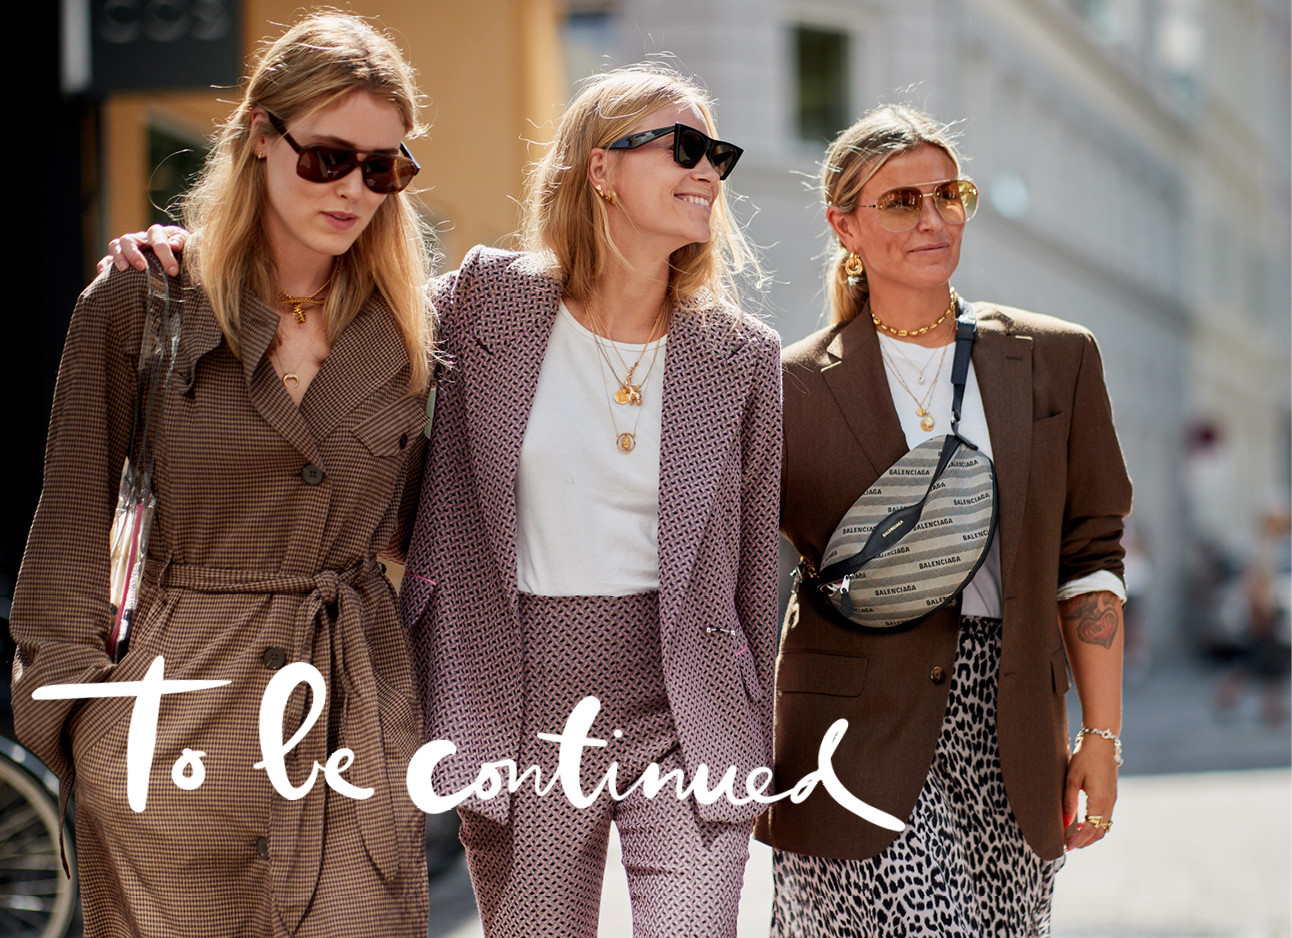 3 vrouwen met zonnebrillen lopen over straat, fashion week, streetstyle, lachen, to be continued